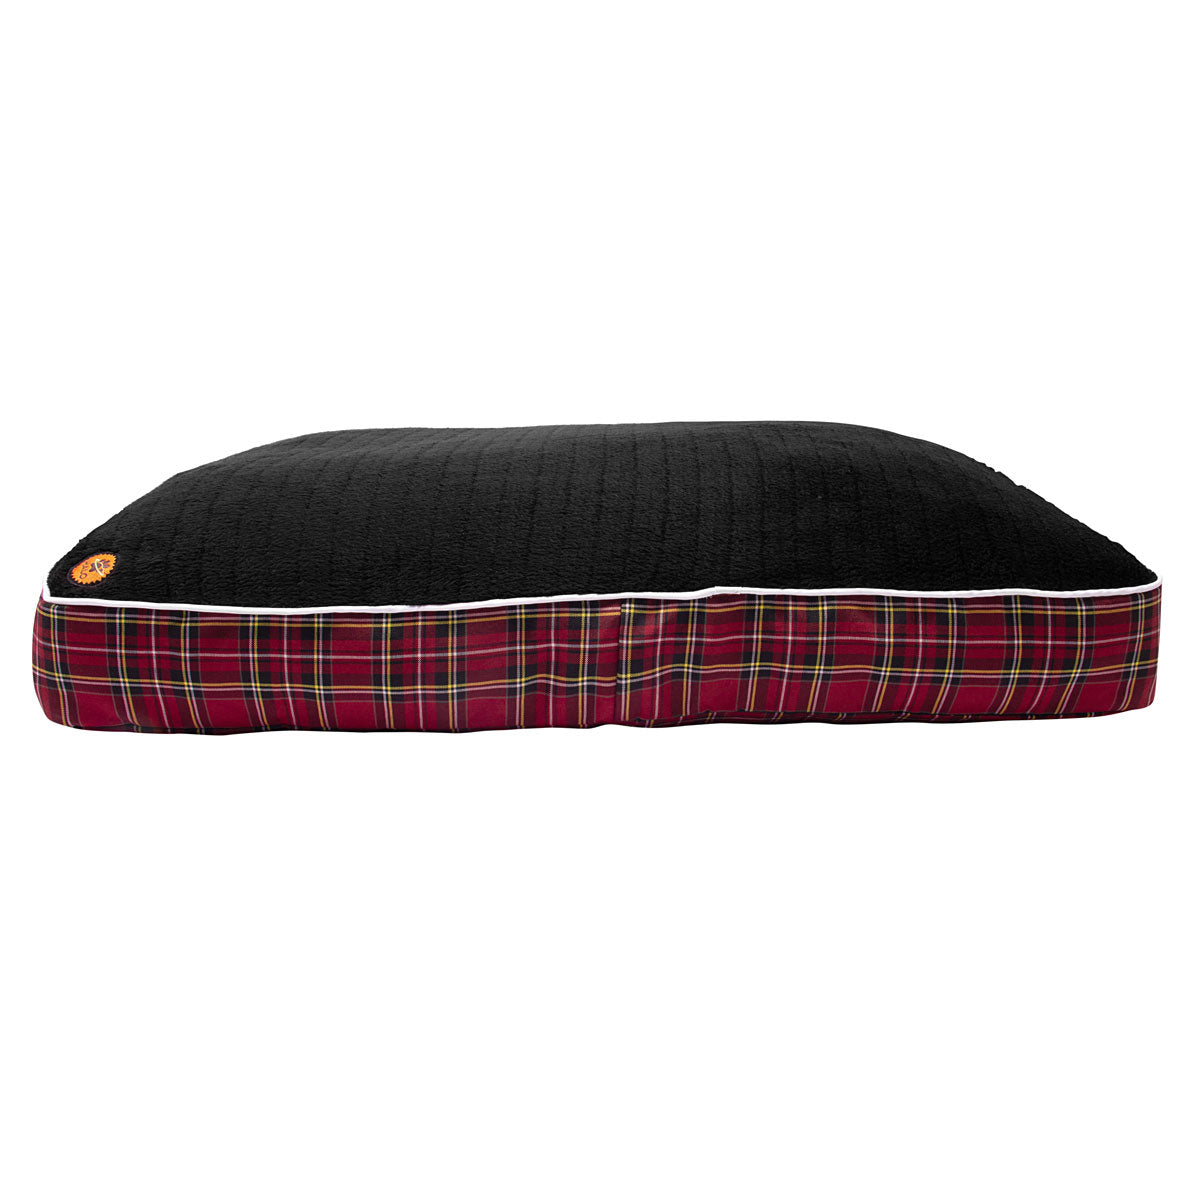 Halo EC Red Plaid Rectangular Dog Bed_2850